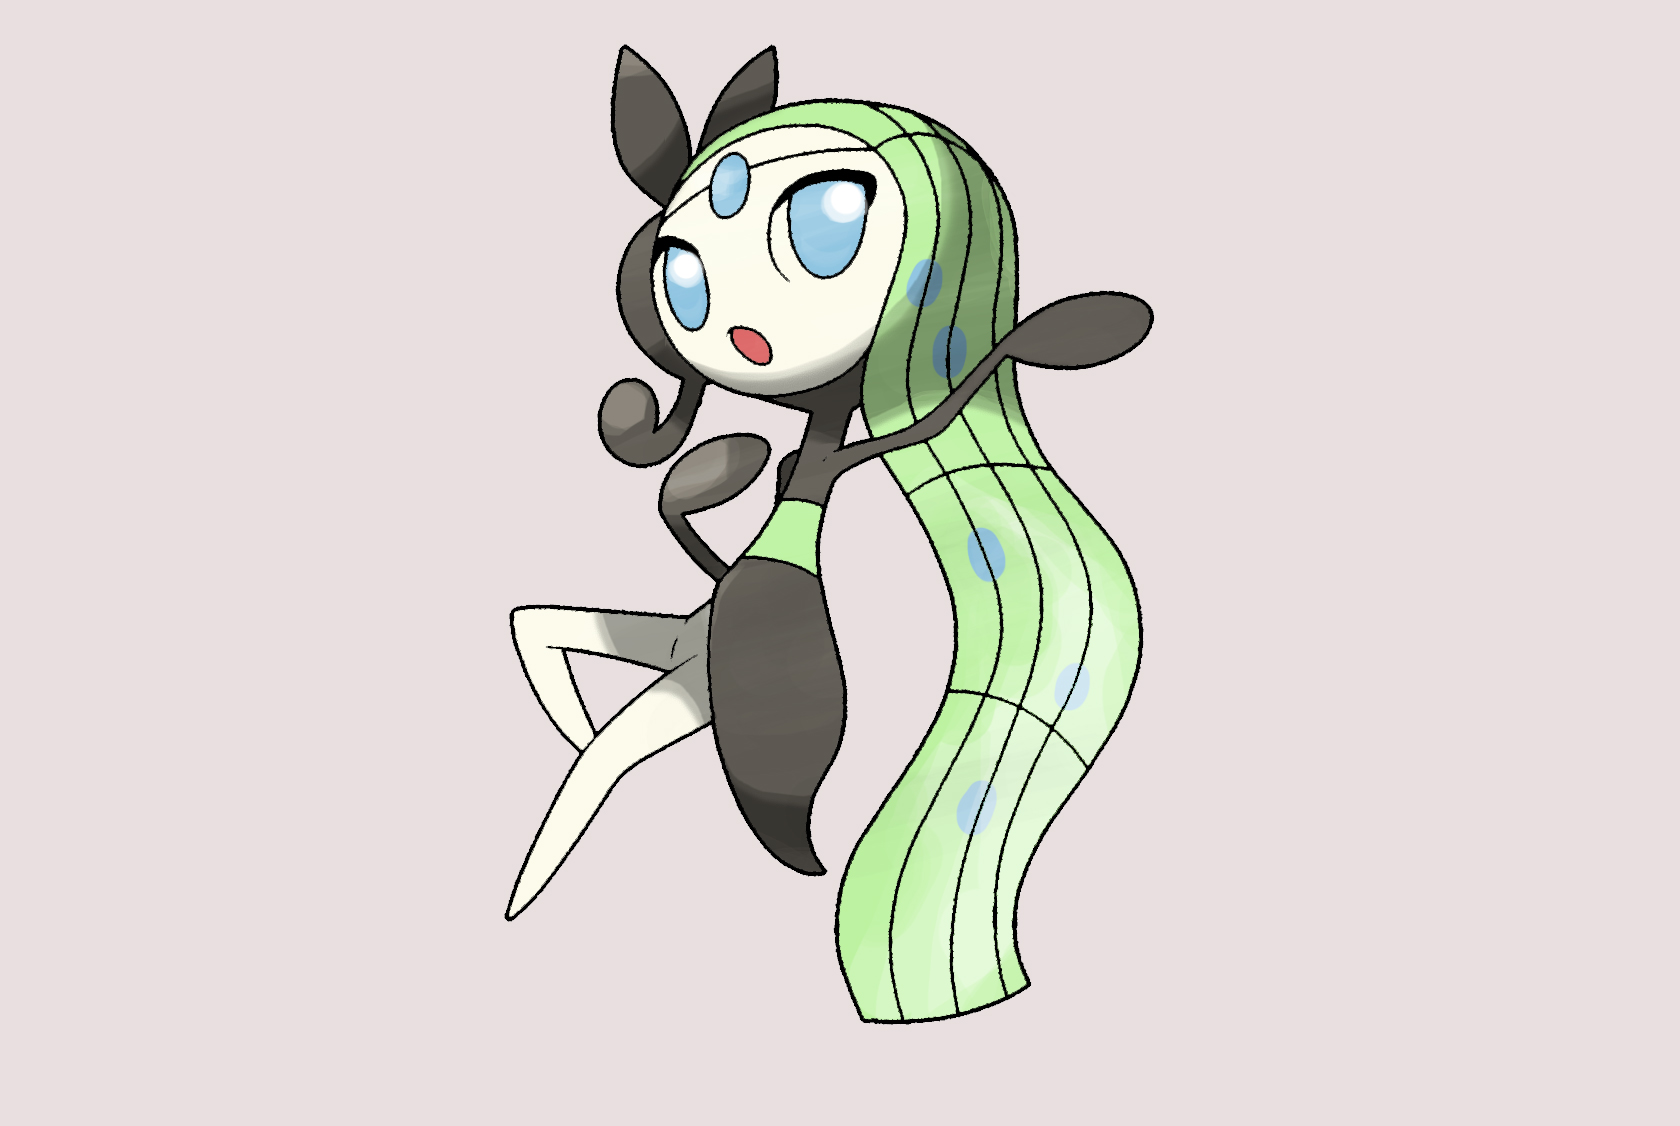 Pokemon Meloetta And Oshawott Images | Pokemon Images